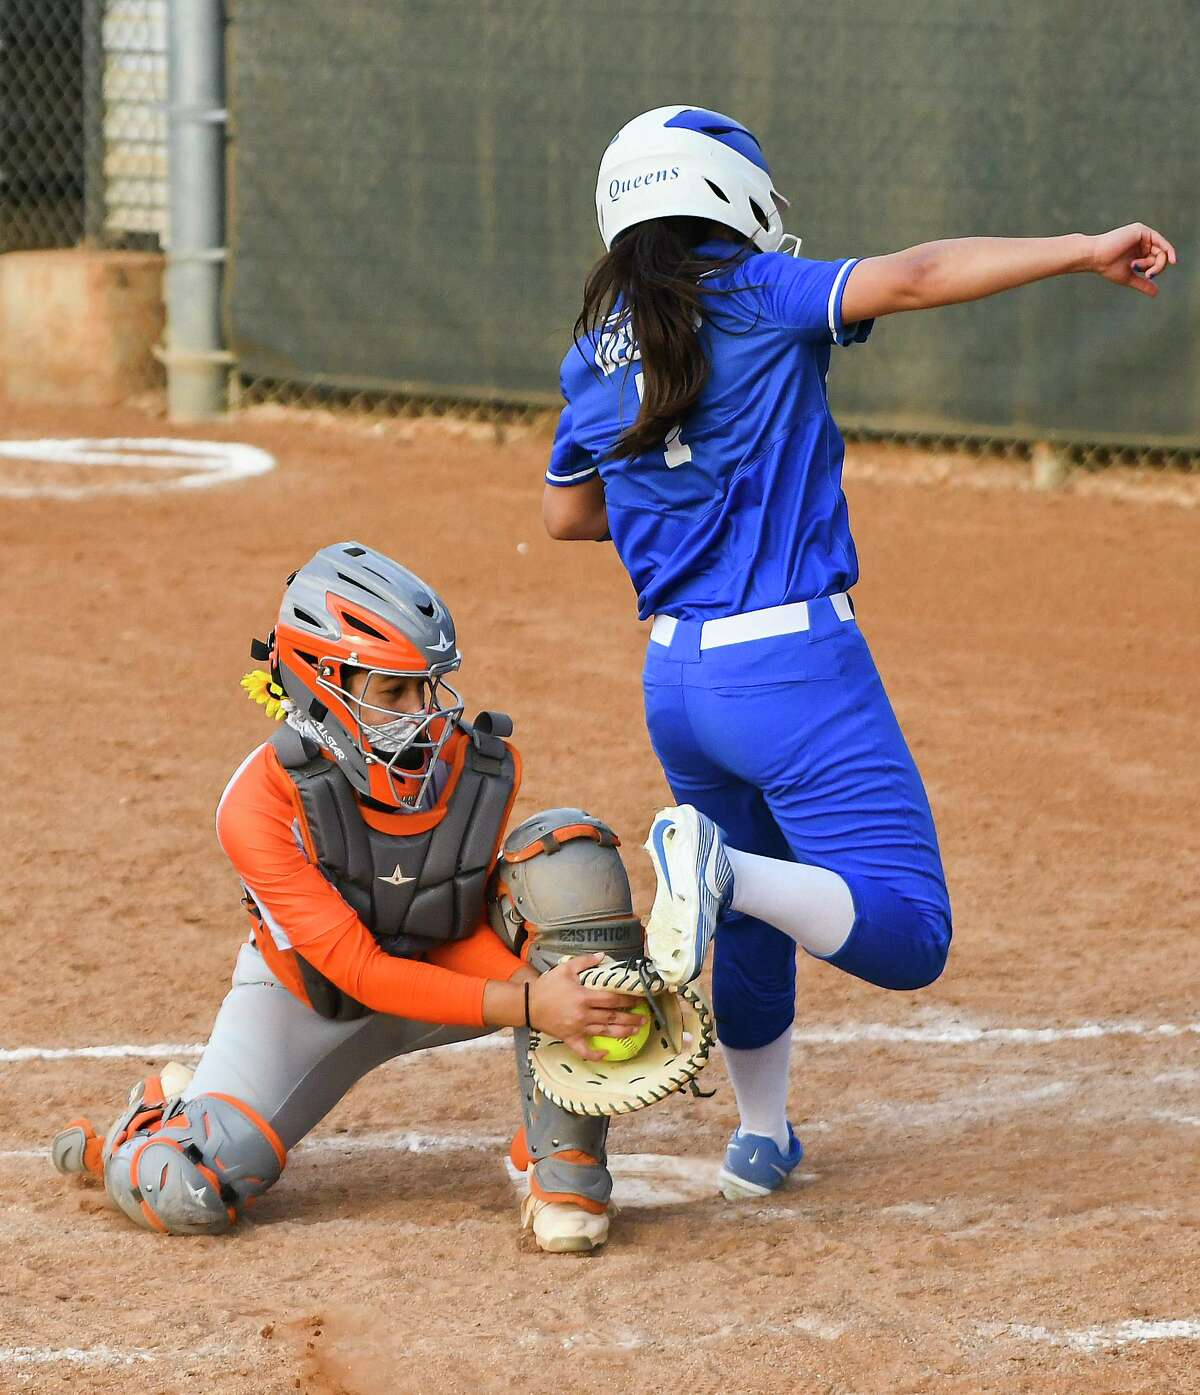 United's Kaylie Ferrezano goes for the tag at home plate Friday at the SAC. The Lady Longhorns improved to 2-1 with a 12-5 victory over Del Rio.